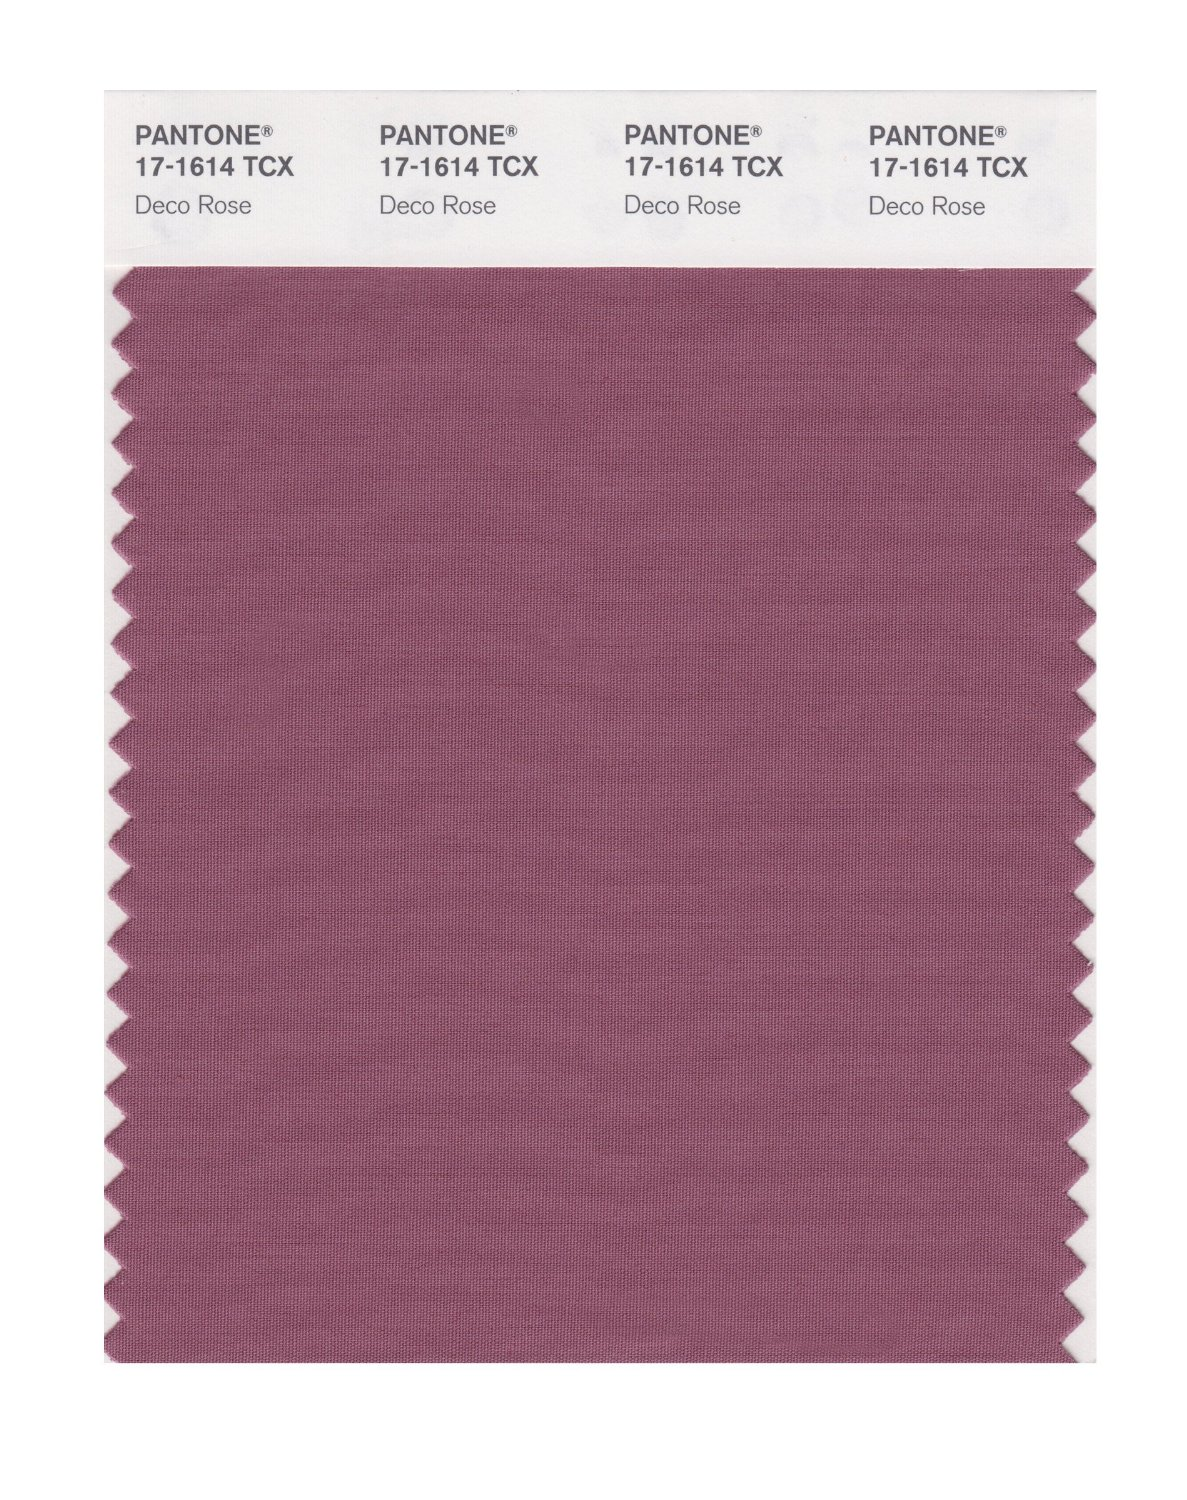 Pantone Smart Swatch 17-1614 Deco Rose